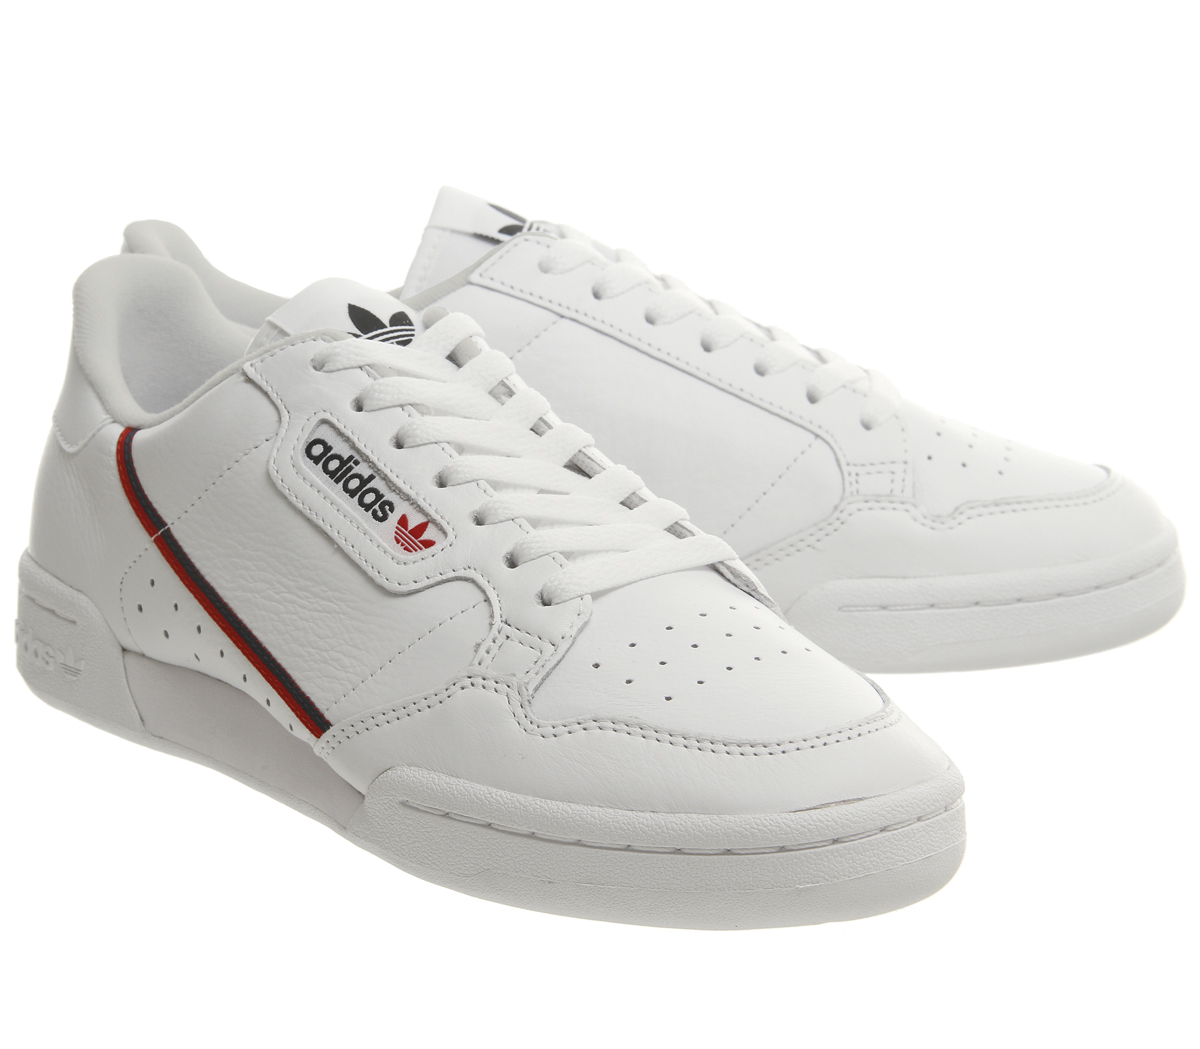 5c50b61024 Adidas Continental 80's Trainers WHITE SCARLETT COLLEGIATE NAVY ...